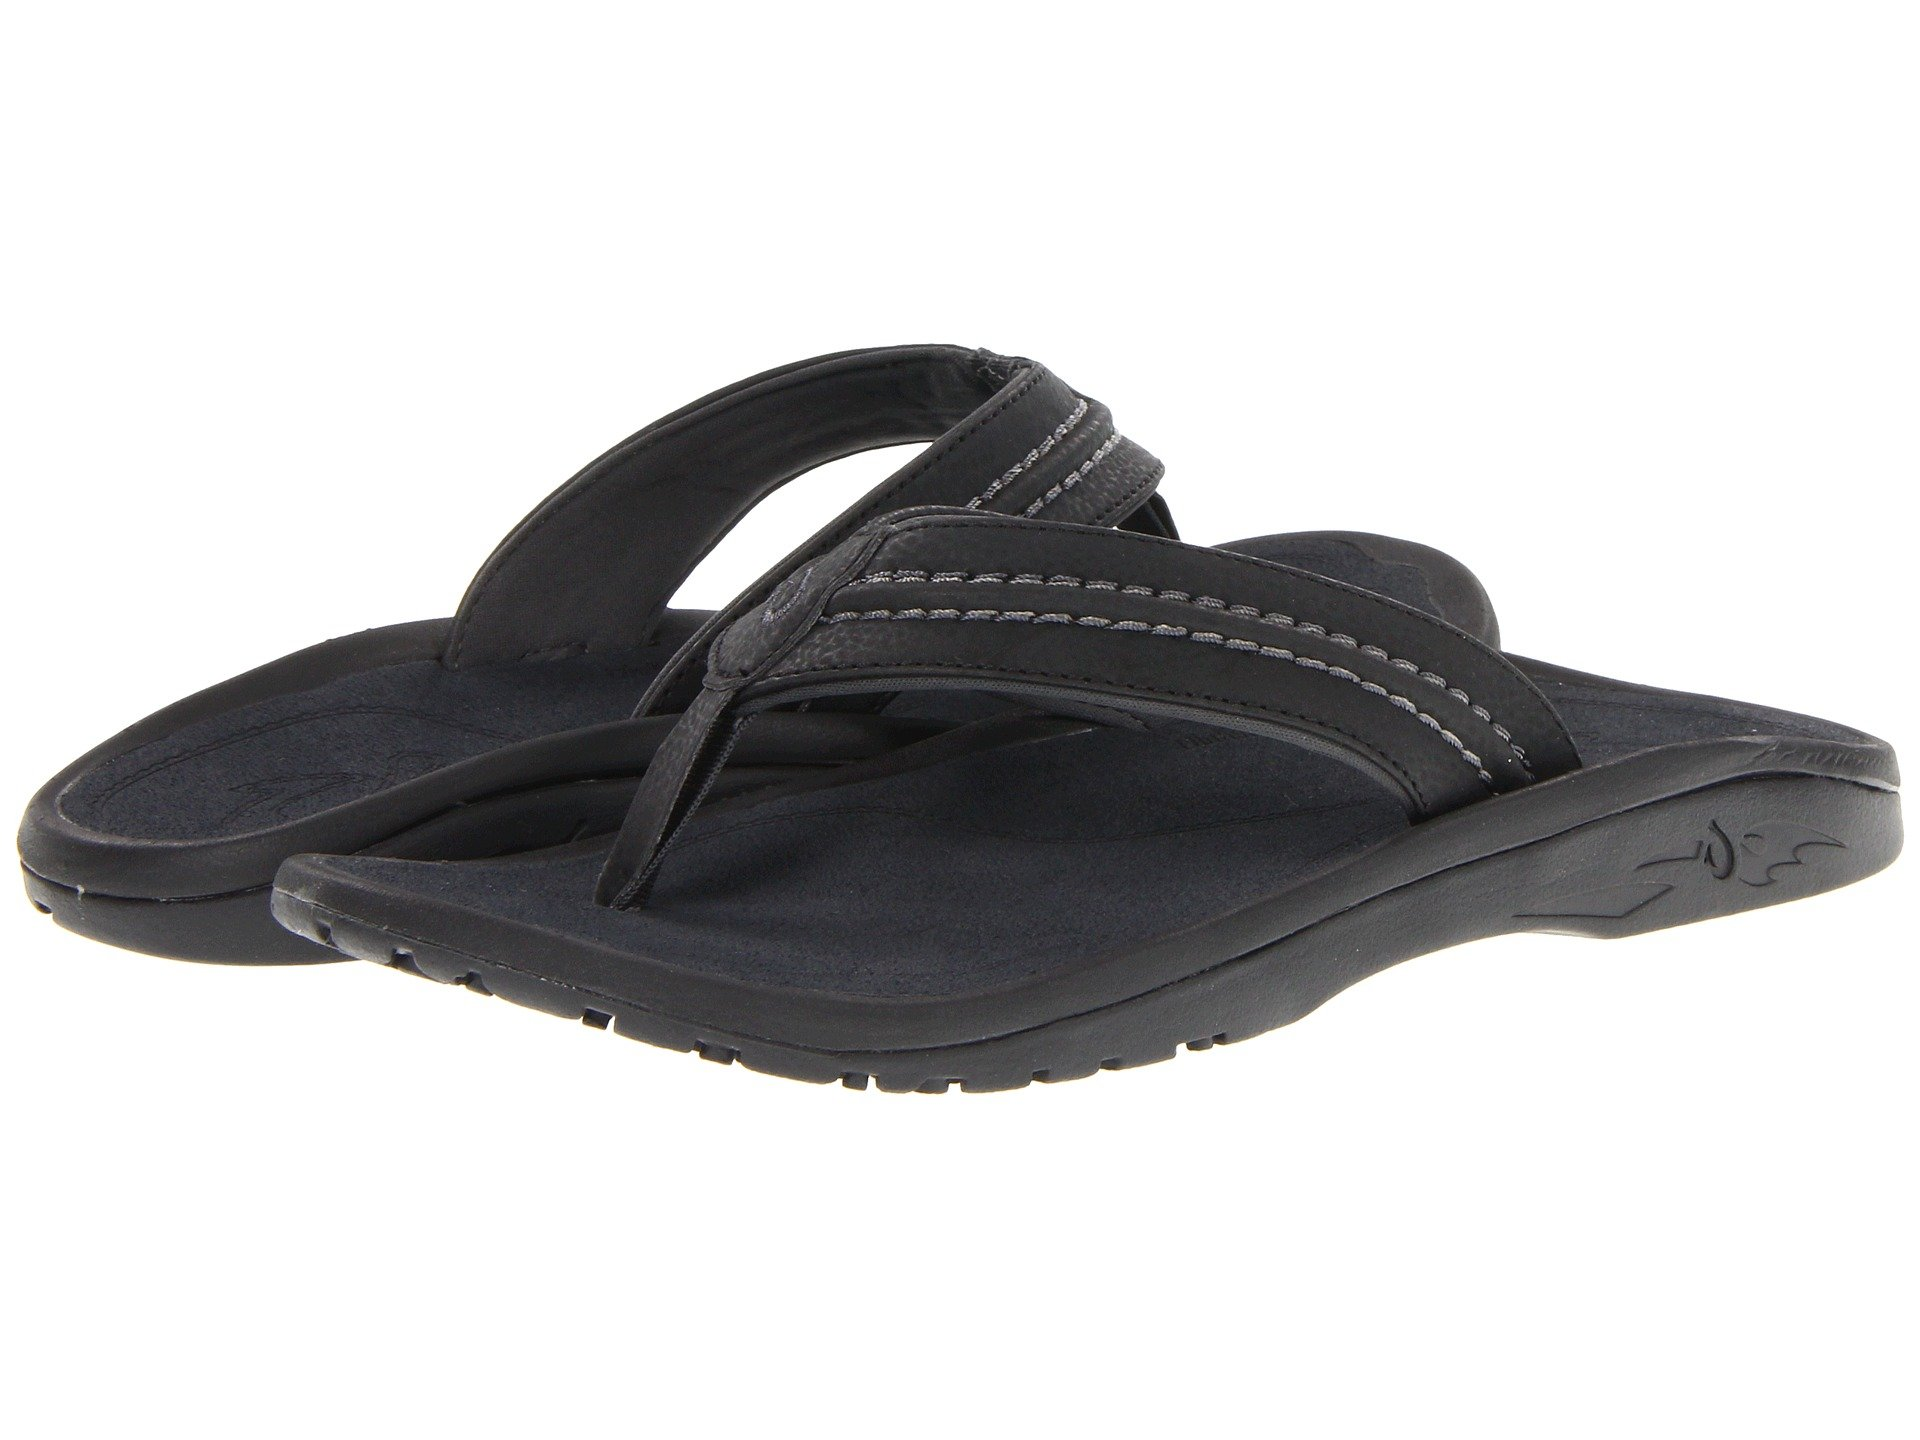 OLUKAI Hokua Sandal - Men's Black/Dark Shadow 9 by OLUKAI